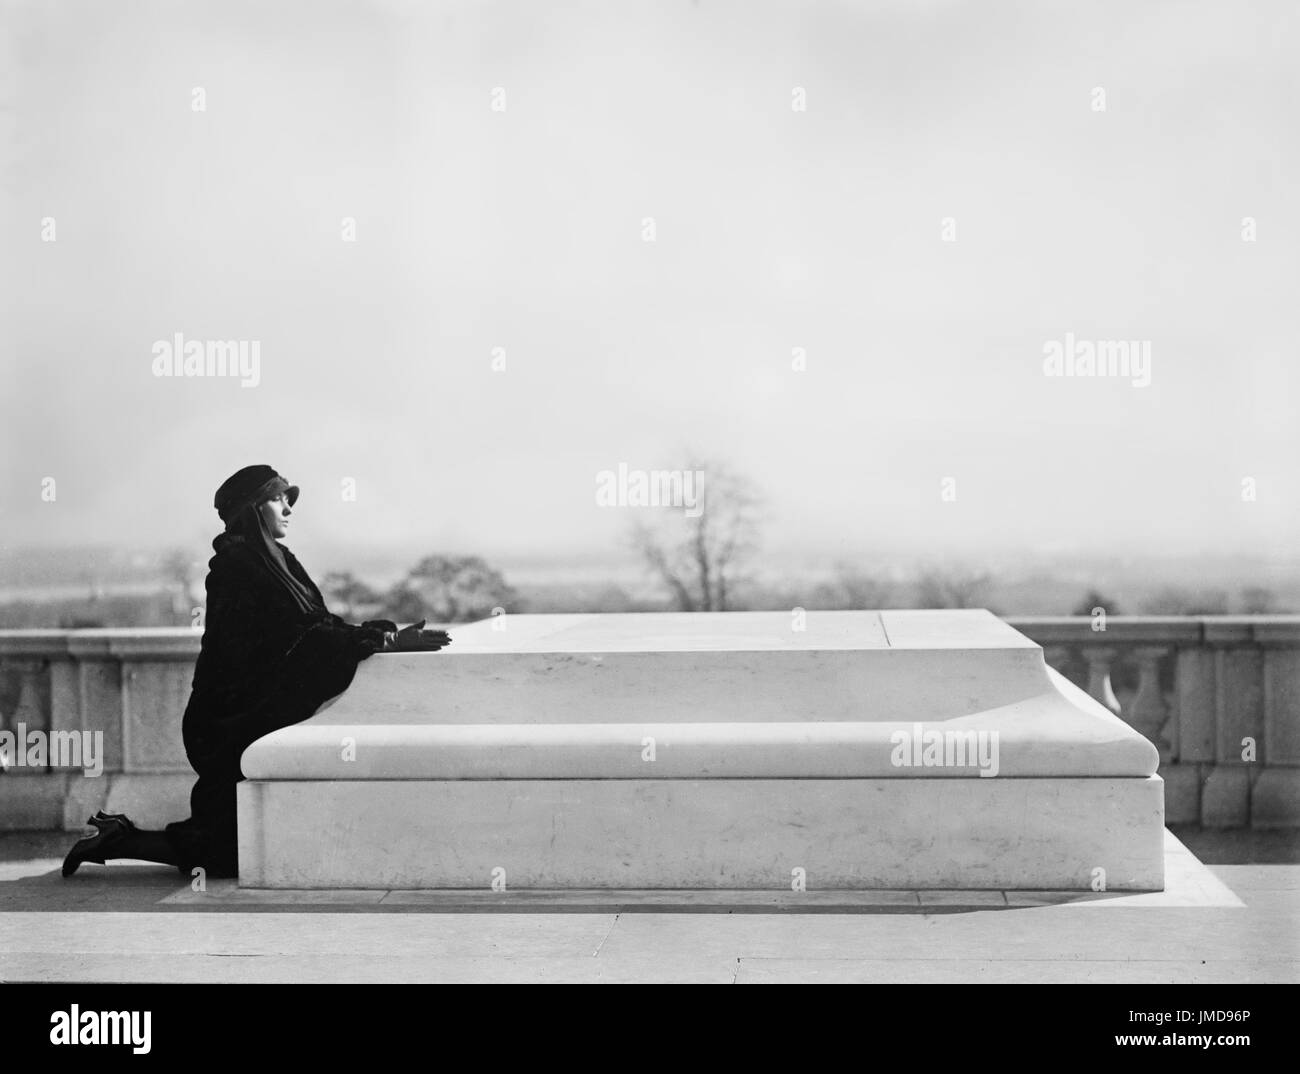 Woman Kneeling at Tomb of Unknown Soldier, Arlington National Cemetery, Arlington, Virginia, USA, Harris & Ewing, Stock Photo